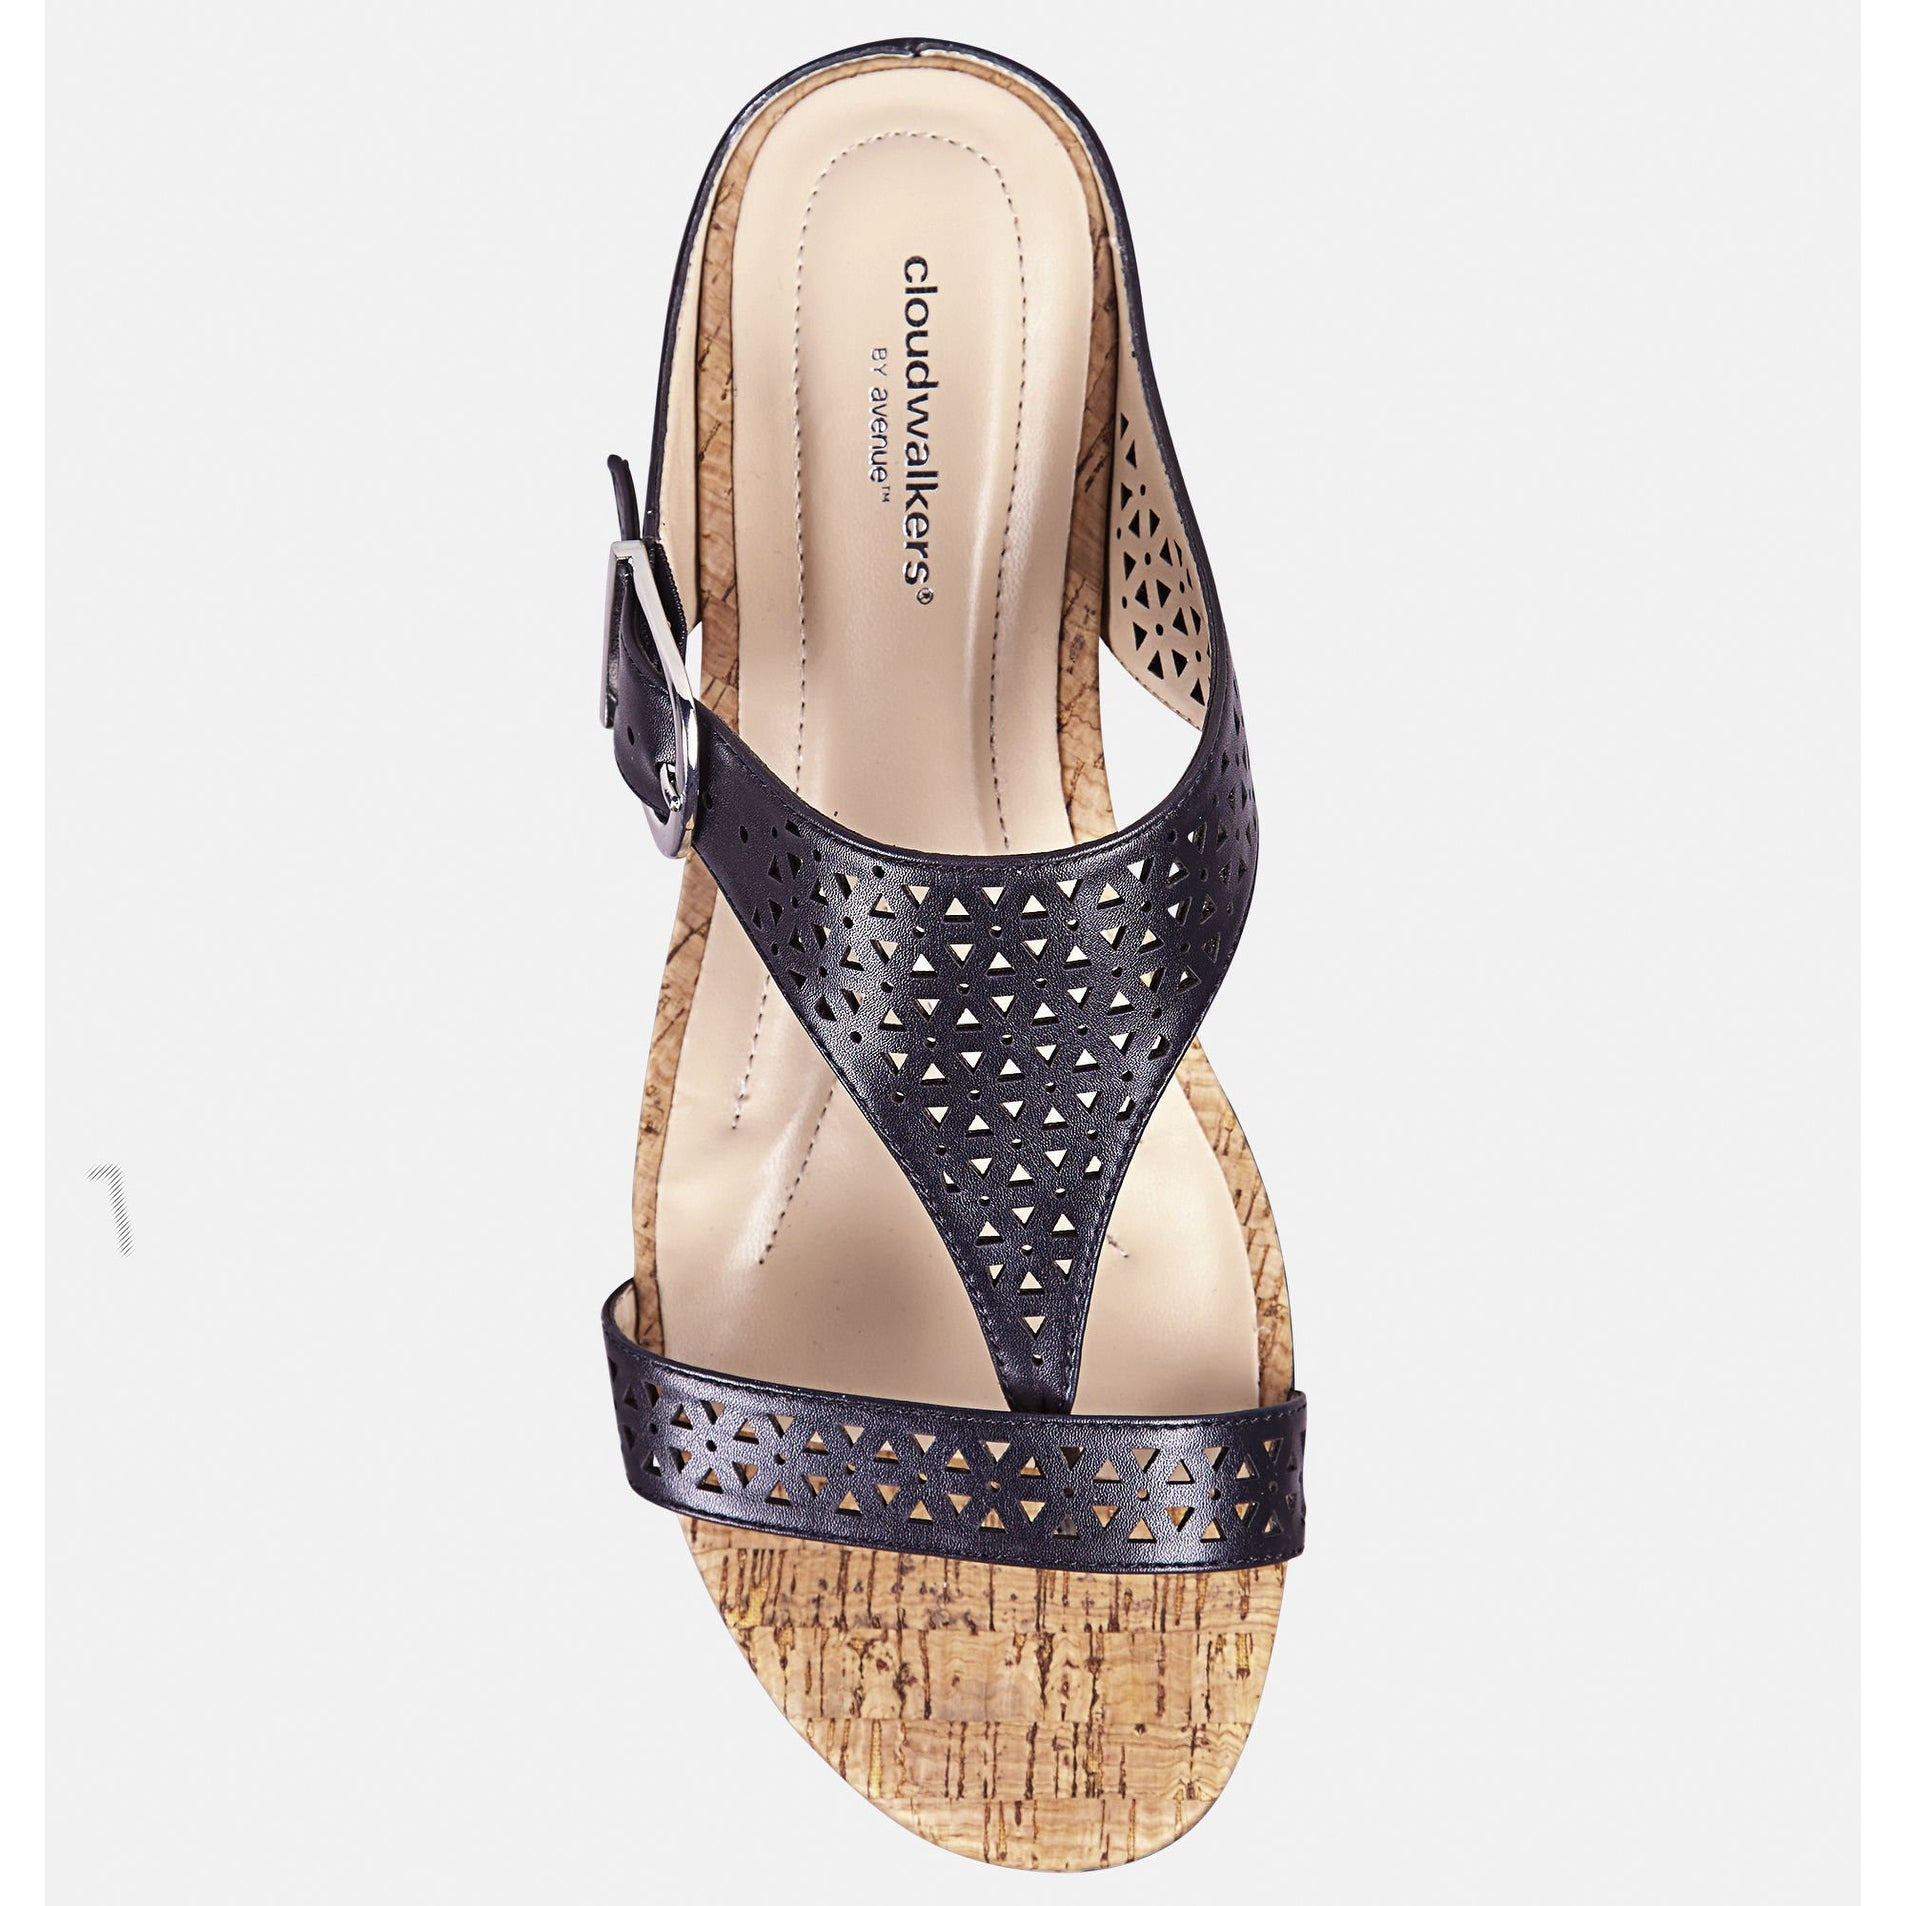 2099d38d894 Shop AVENUE Women s Ivy Perforated T-Strap Slide - Gold - Free Shipping  Today - Overstock - 27423995